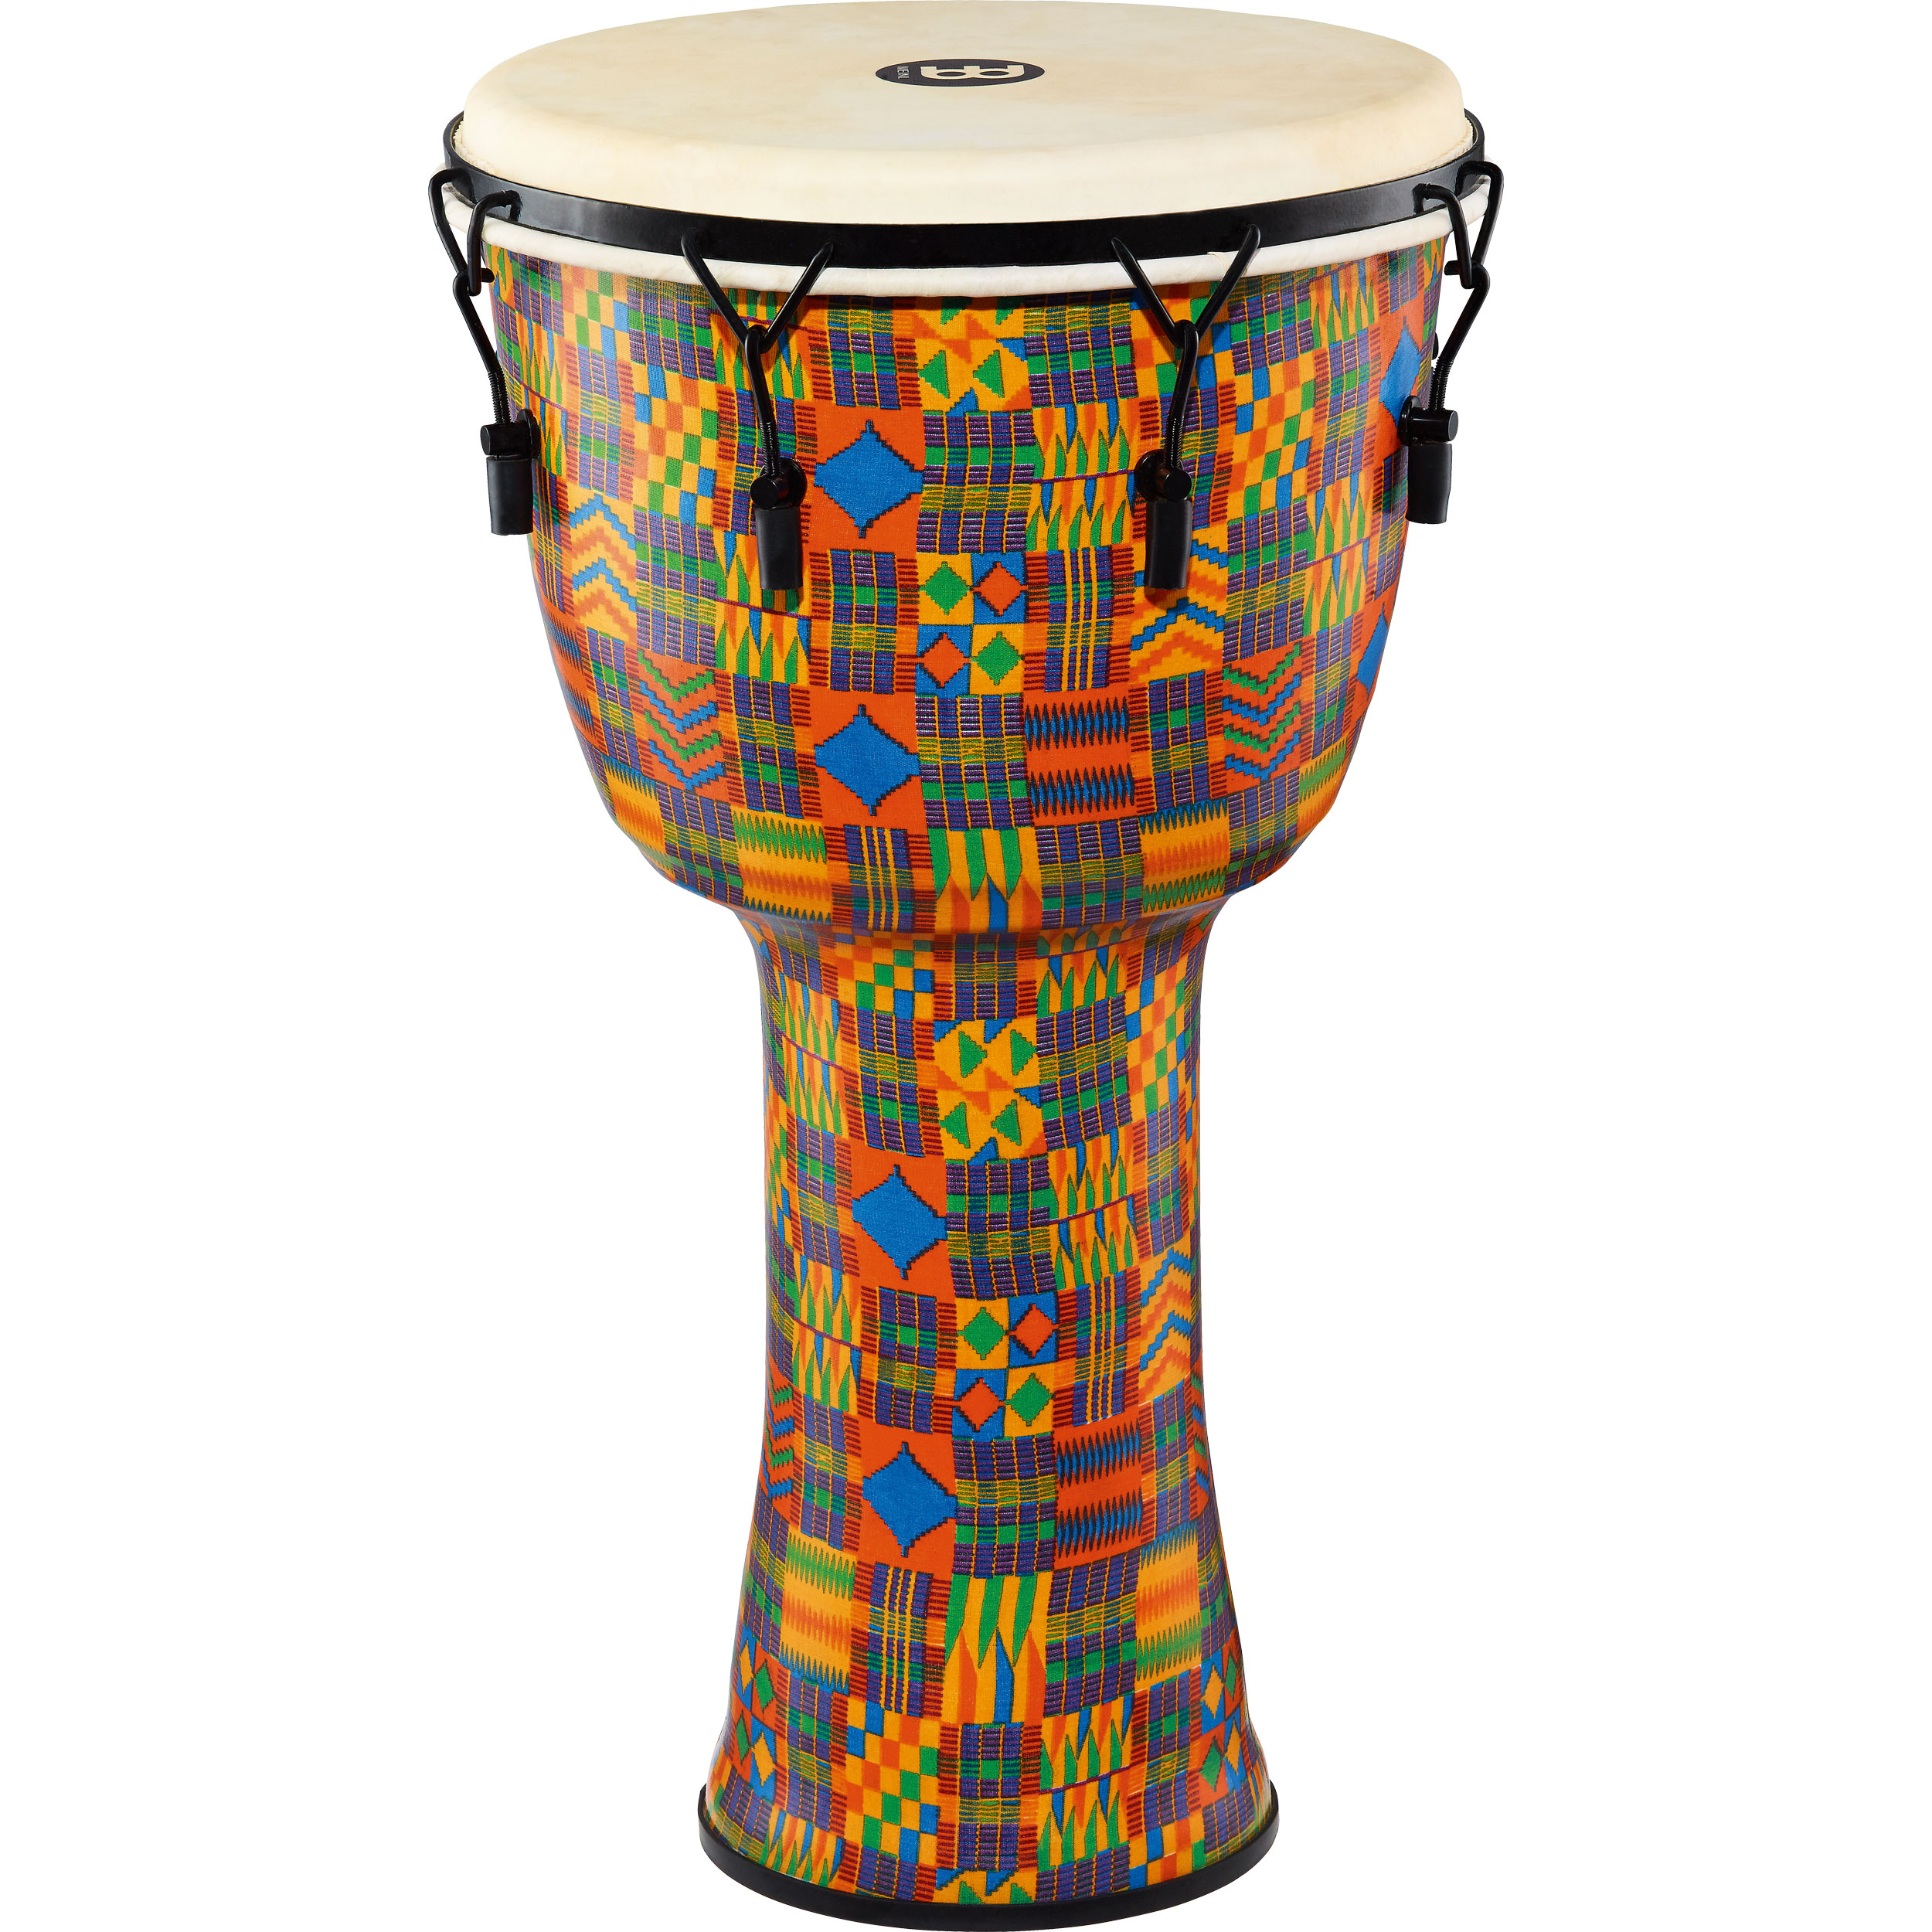 "Meinl 14"" Mechanically-Tuned Travel Djembe in Kenyan Quilt with Natural Head"